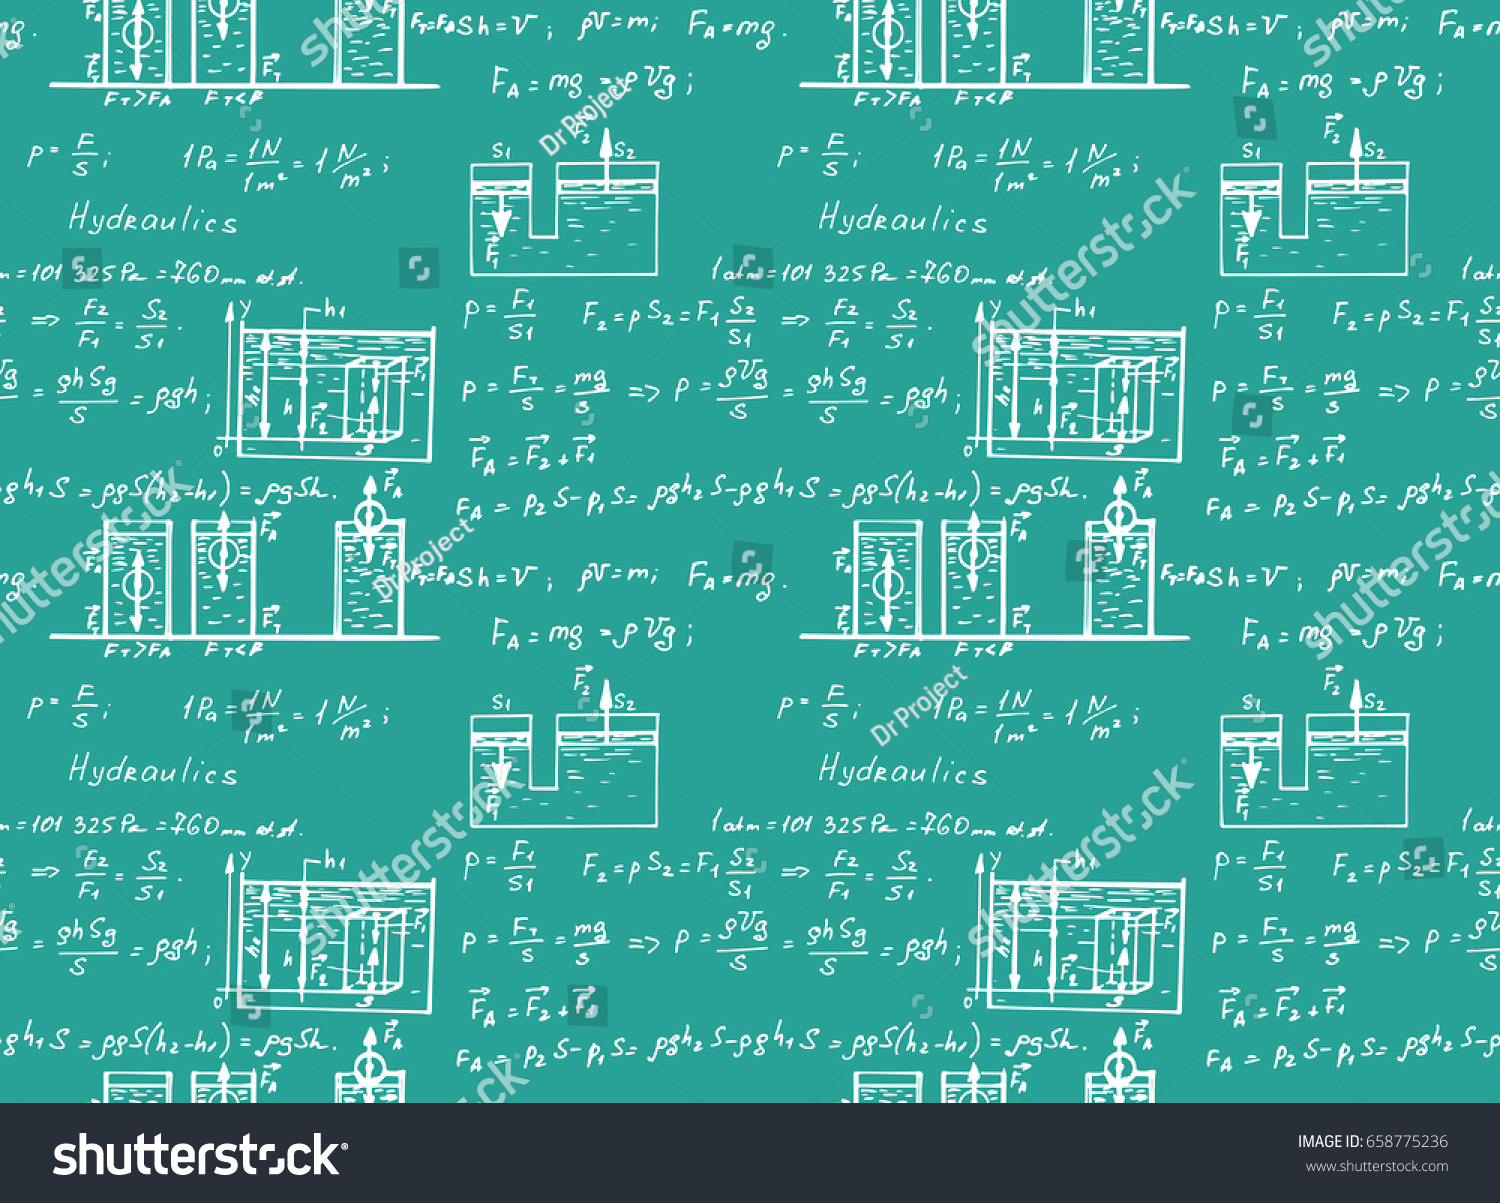 Hydraulics Fluid Law Theory Mathematical Formula Stock Vector Circuit Diagram Notation On Electronic Symbols And Physics Equation Doodle Handwriting Icon In